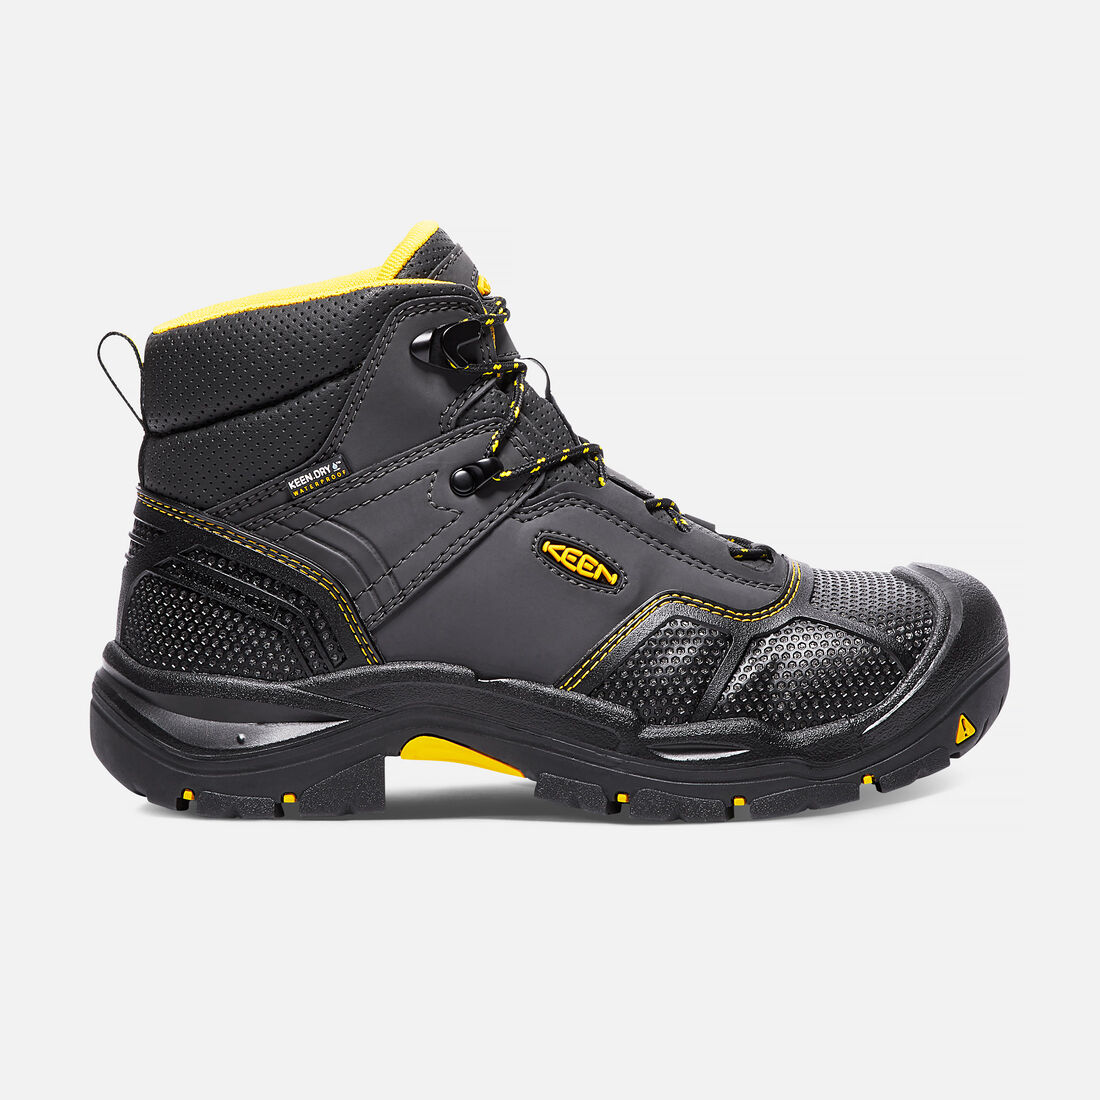 de9ee0bdd4b Men's LOGANDALE Waterproof Boot (Steel Toe) - One tough customer ...